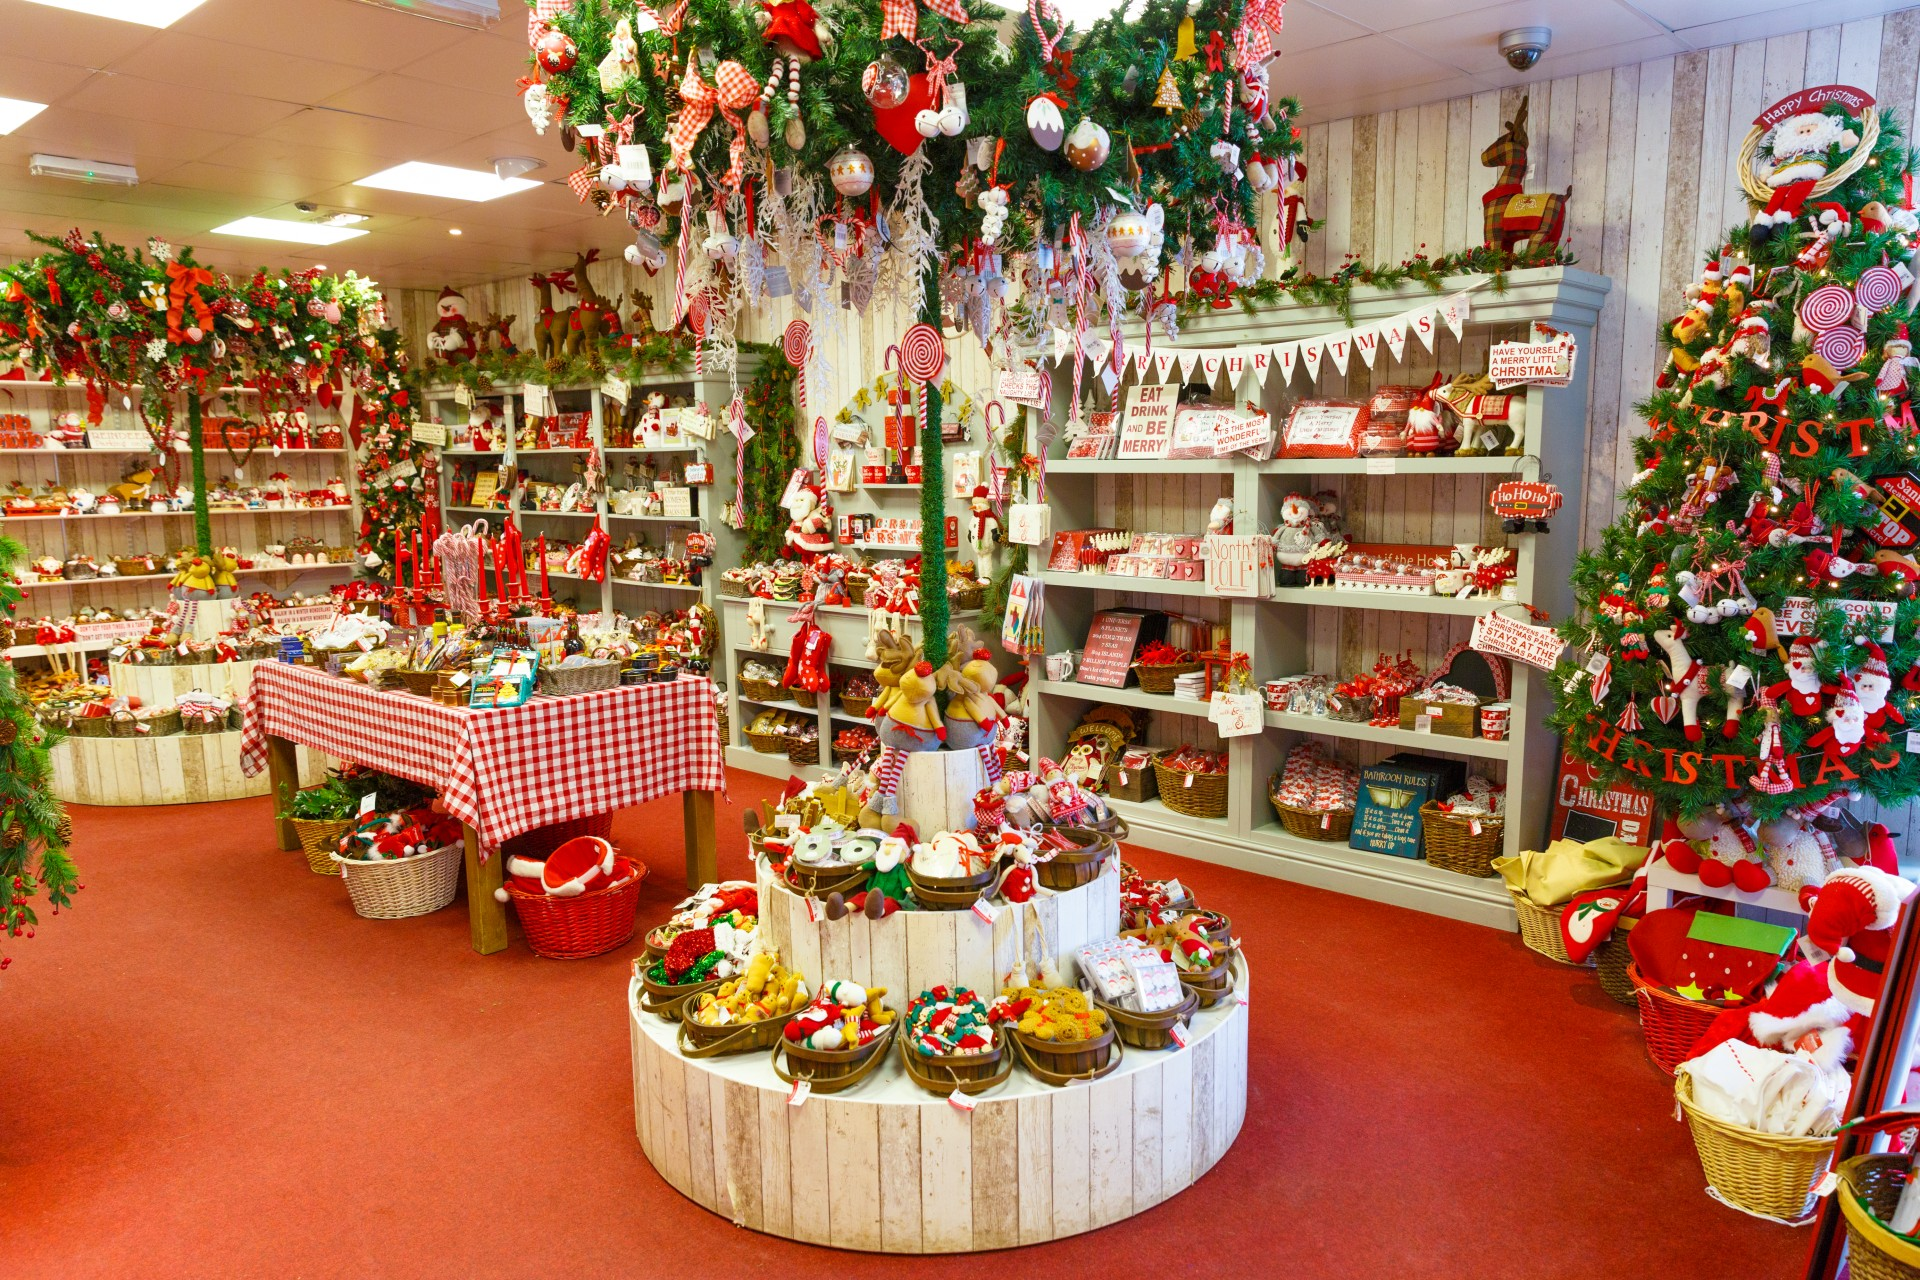 Cute Merry Christmas Wallpaper Backgrounds Cute Christmas Shop Free Stock Photo Public Domain Pictures